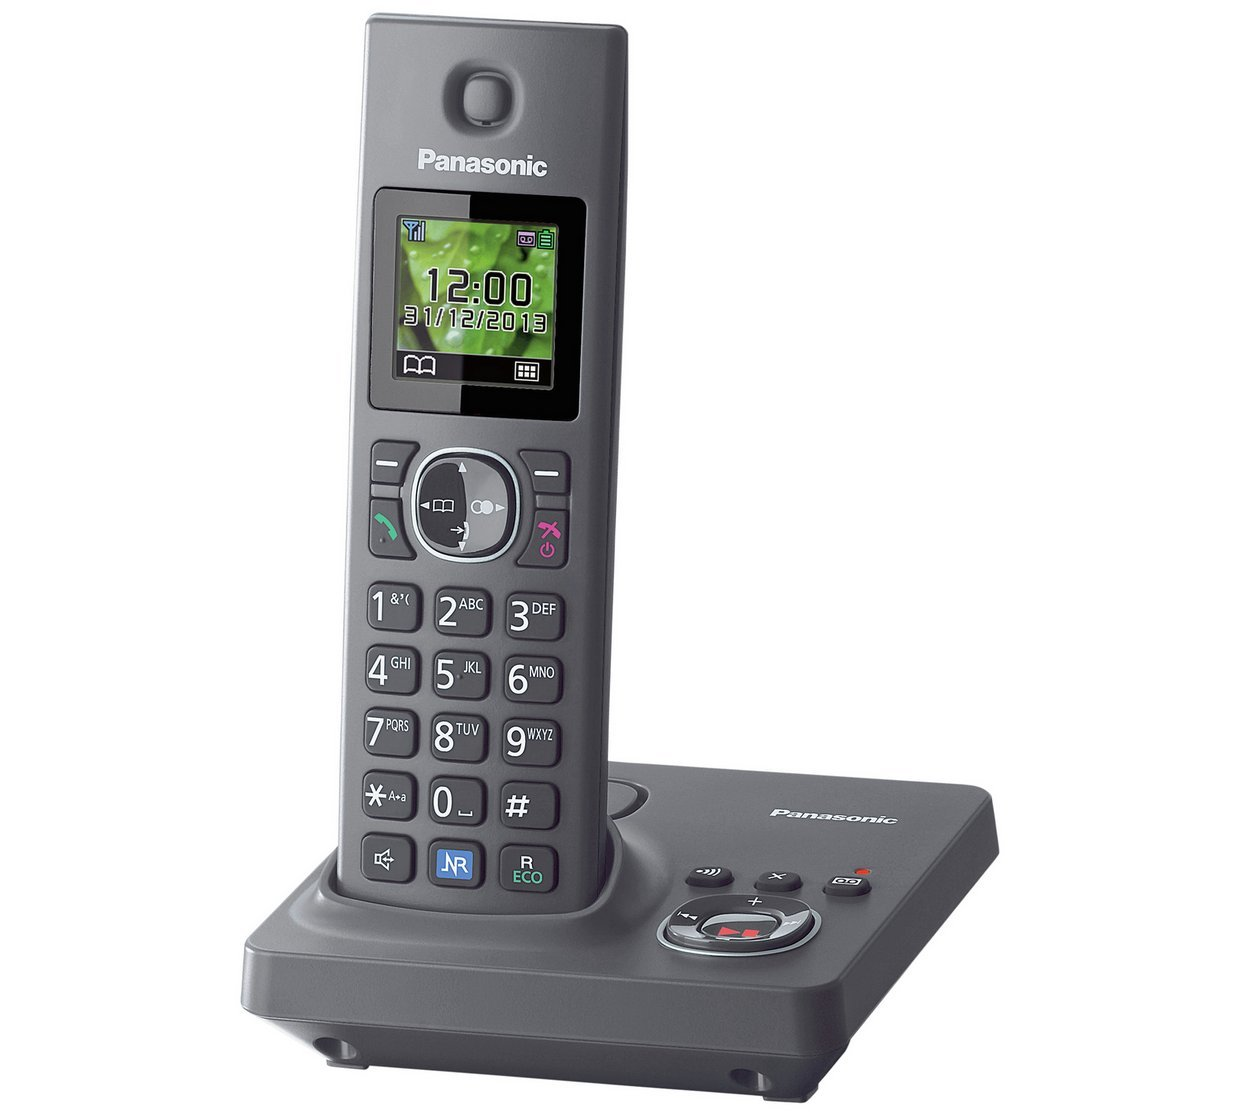 Panasonic Panasonic - KX-TG7921E - Cordless Telephone/Answer M/c - Single